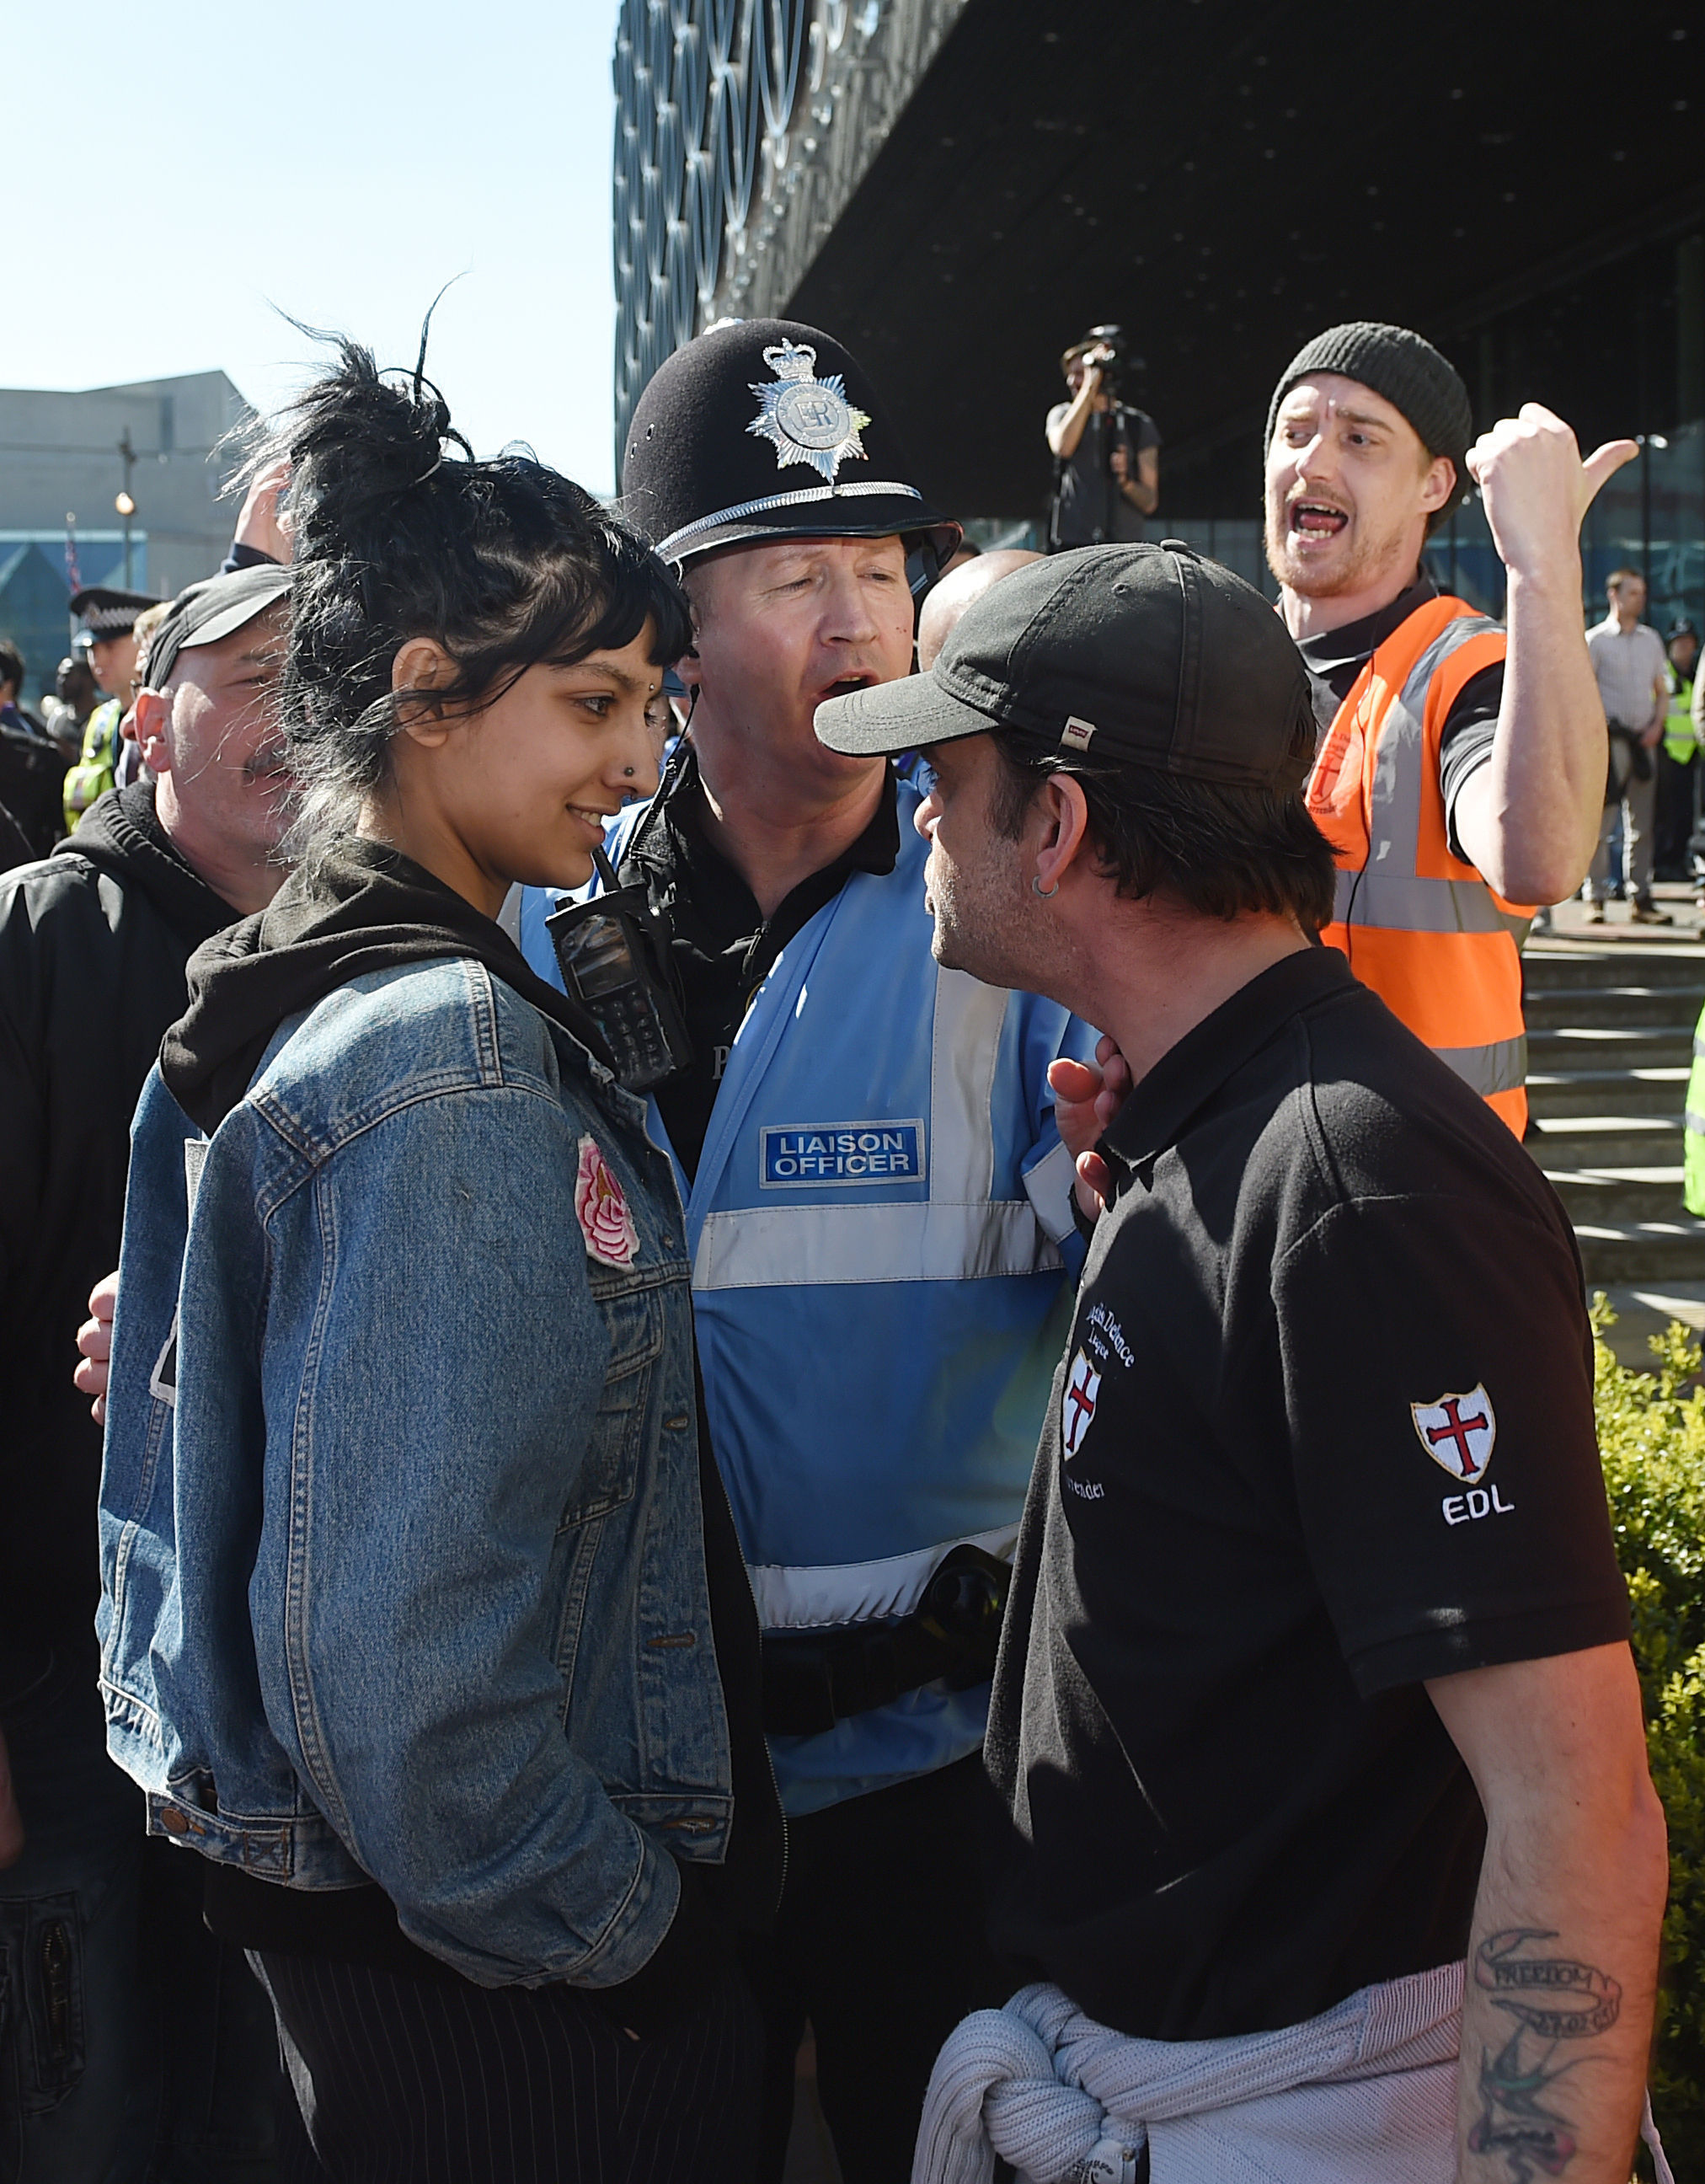 Saffiyah Khan, left, stars down English Defence League protester Ian Crossland during a demonstration in Birmingham, England, on April 10, 2017.